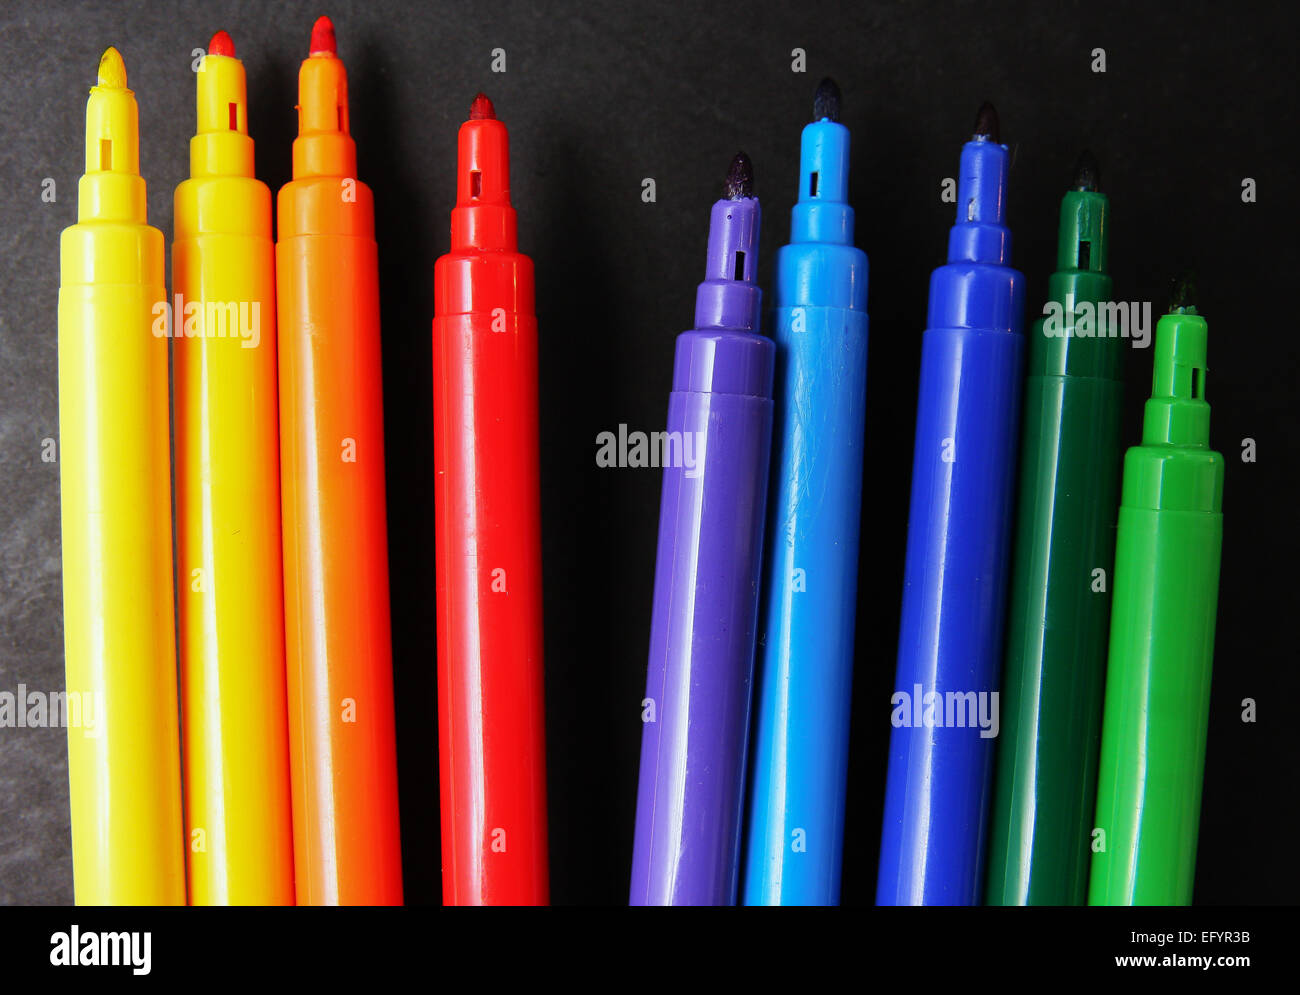 Row Of Colourful Pens On Black Background - Stock Image